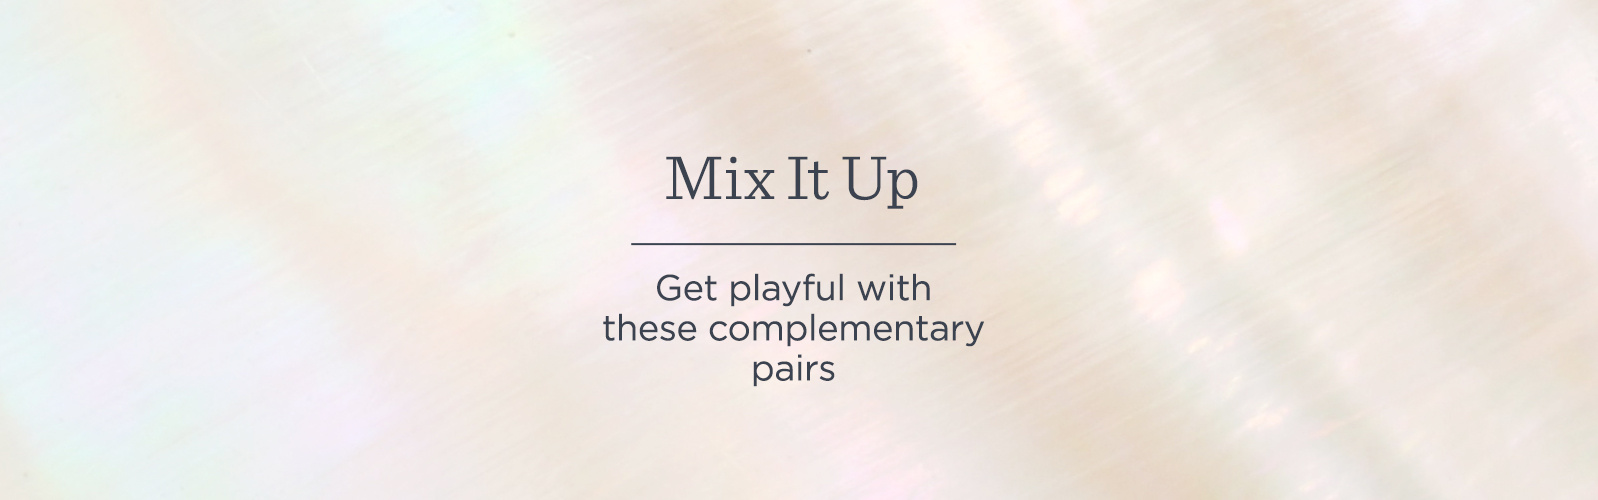 Mix It Up.  Get playful with these complementary pairs